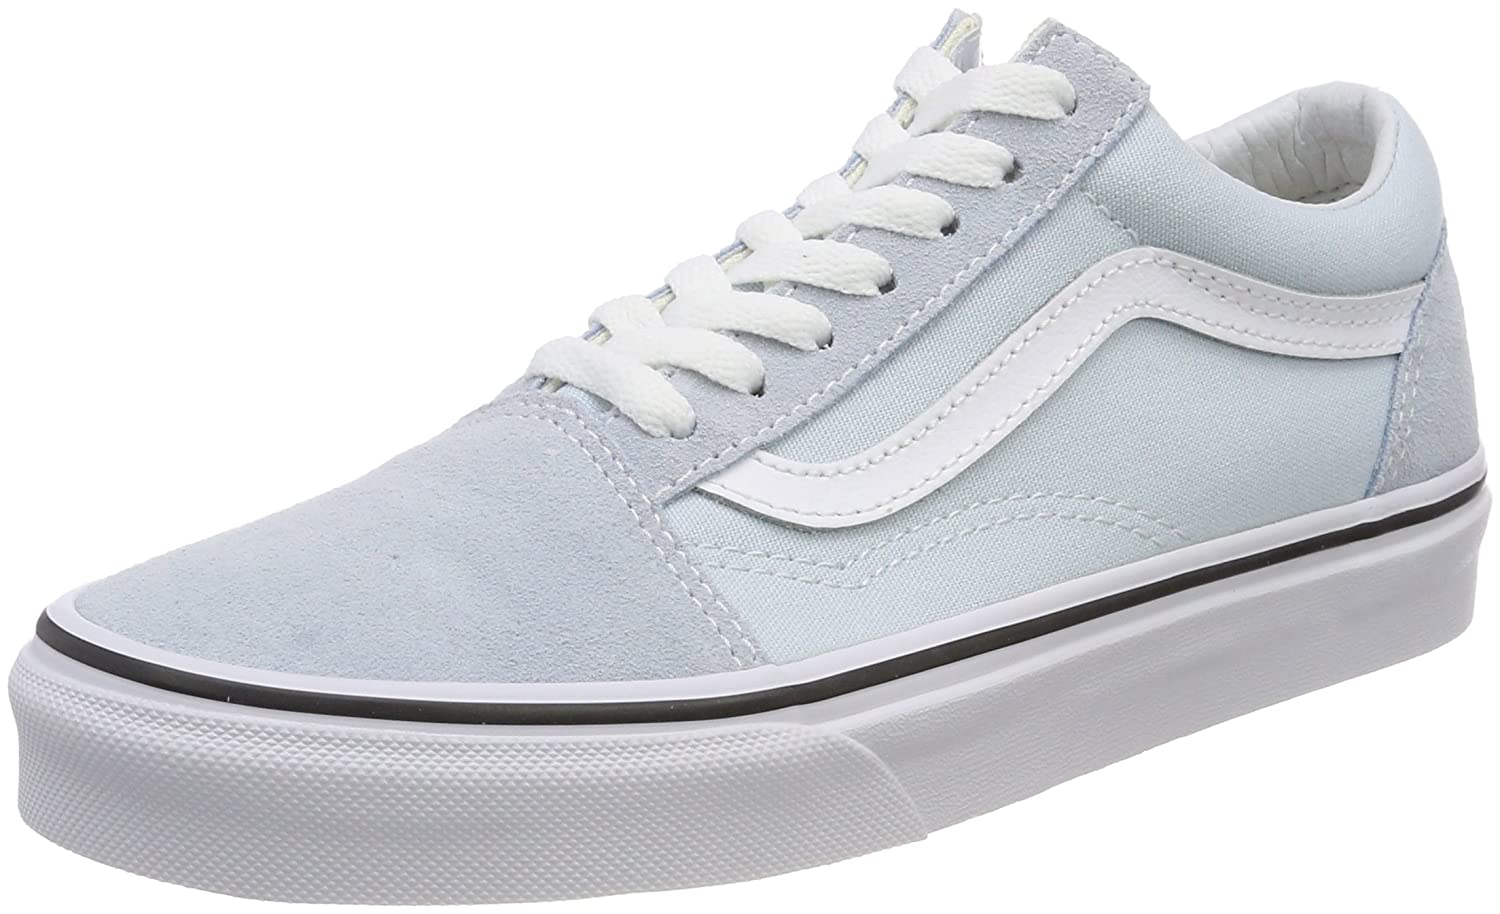 Vans レディース B074HHNBRY 5.5 Women / 4 Men M US|Baby Blue 7227 Baby Blue 7227 5.5 Women / 4 Men M US